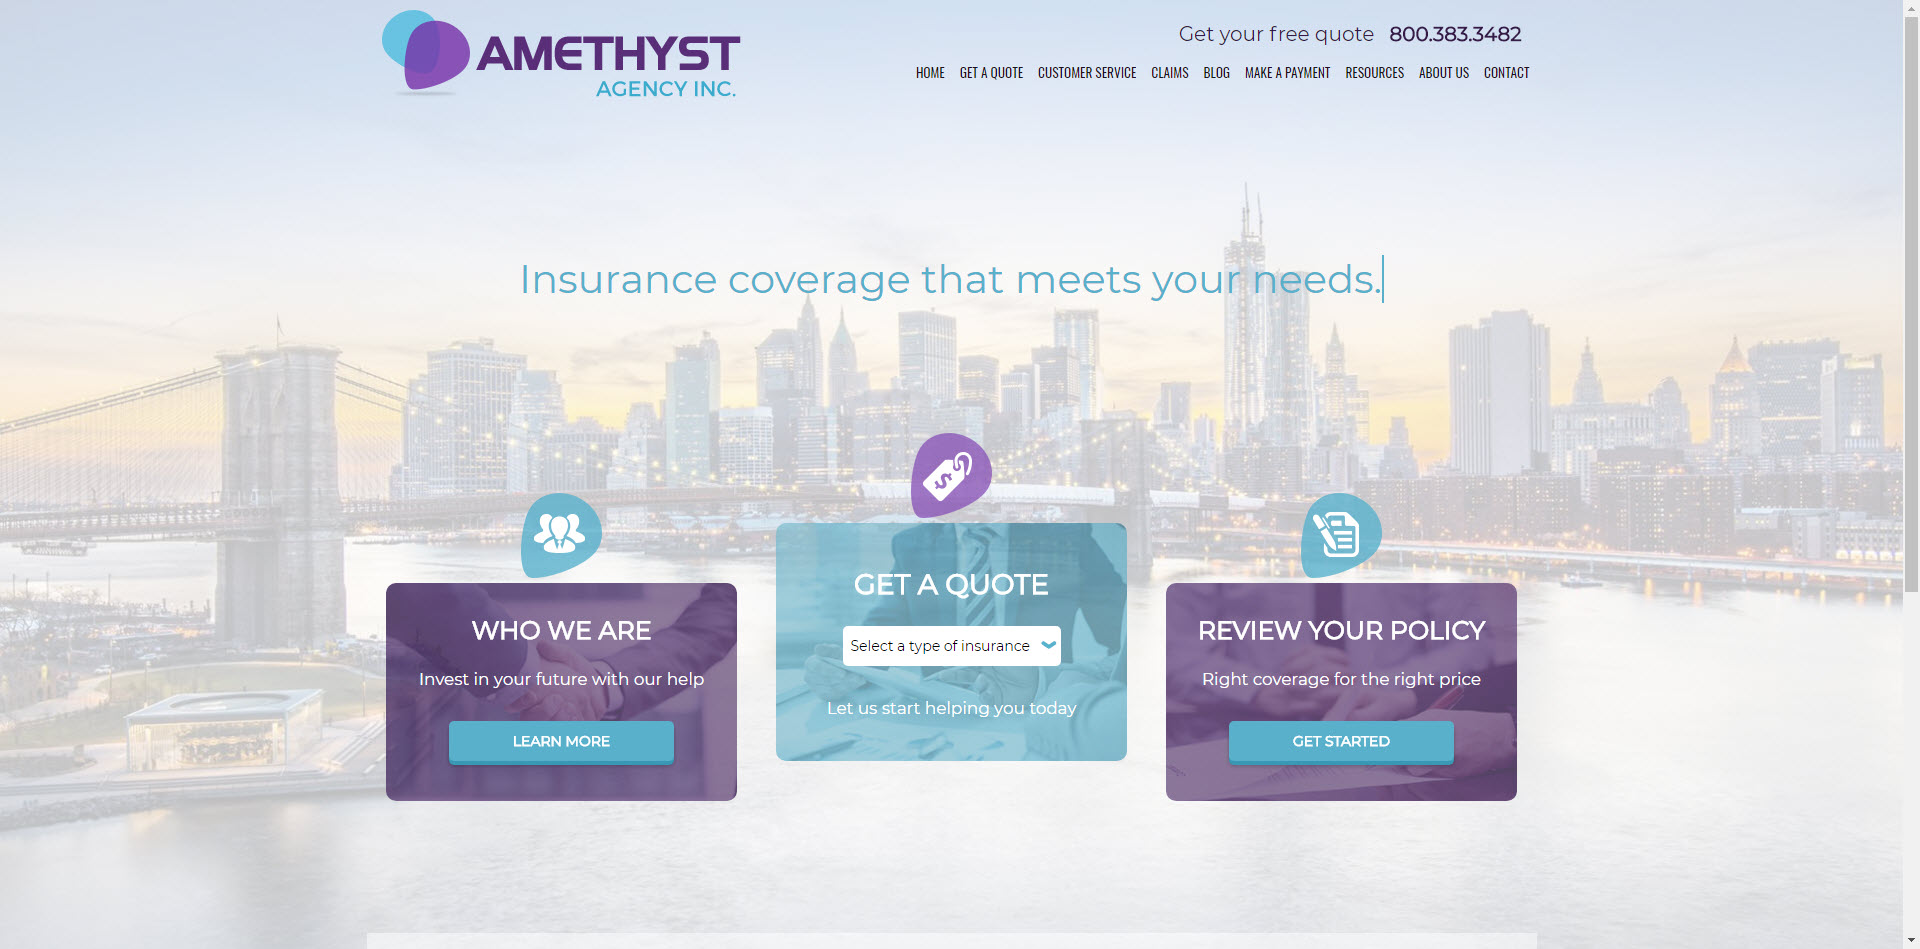 Amethyst insurance website template